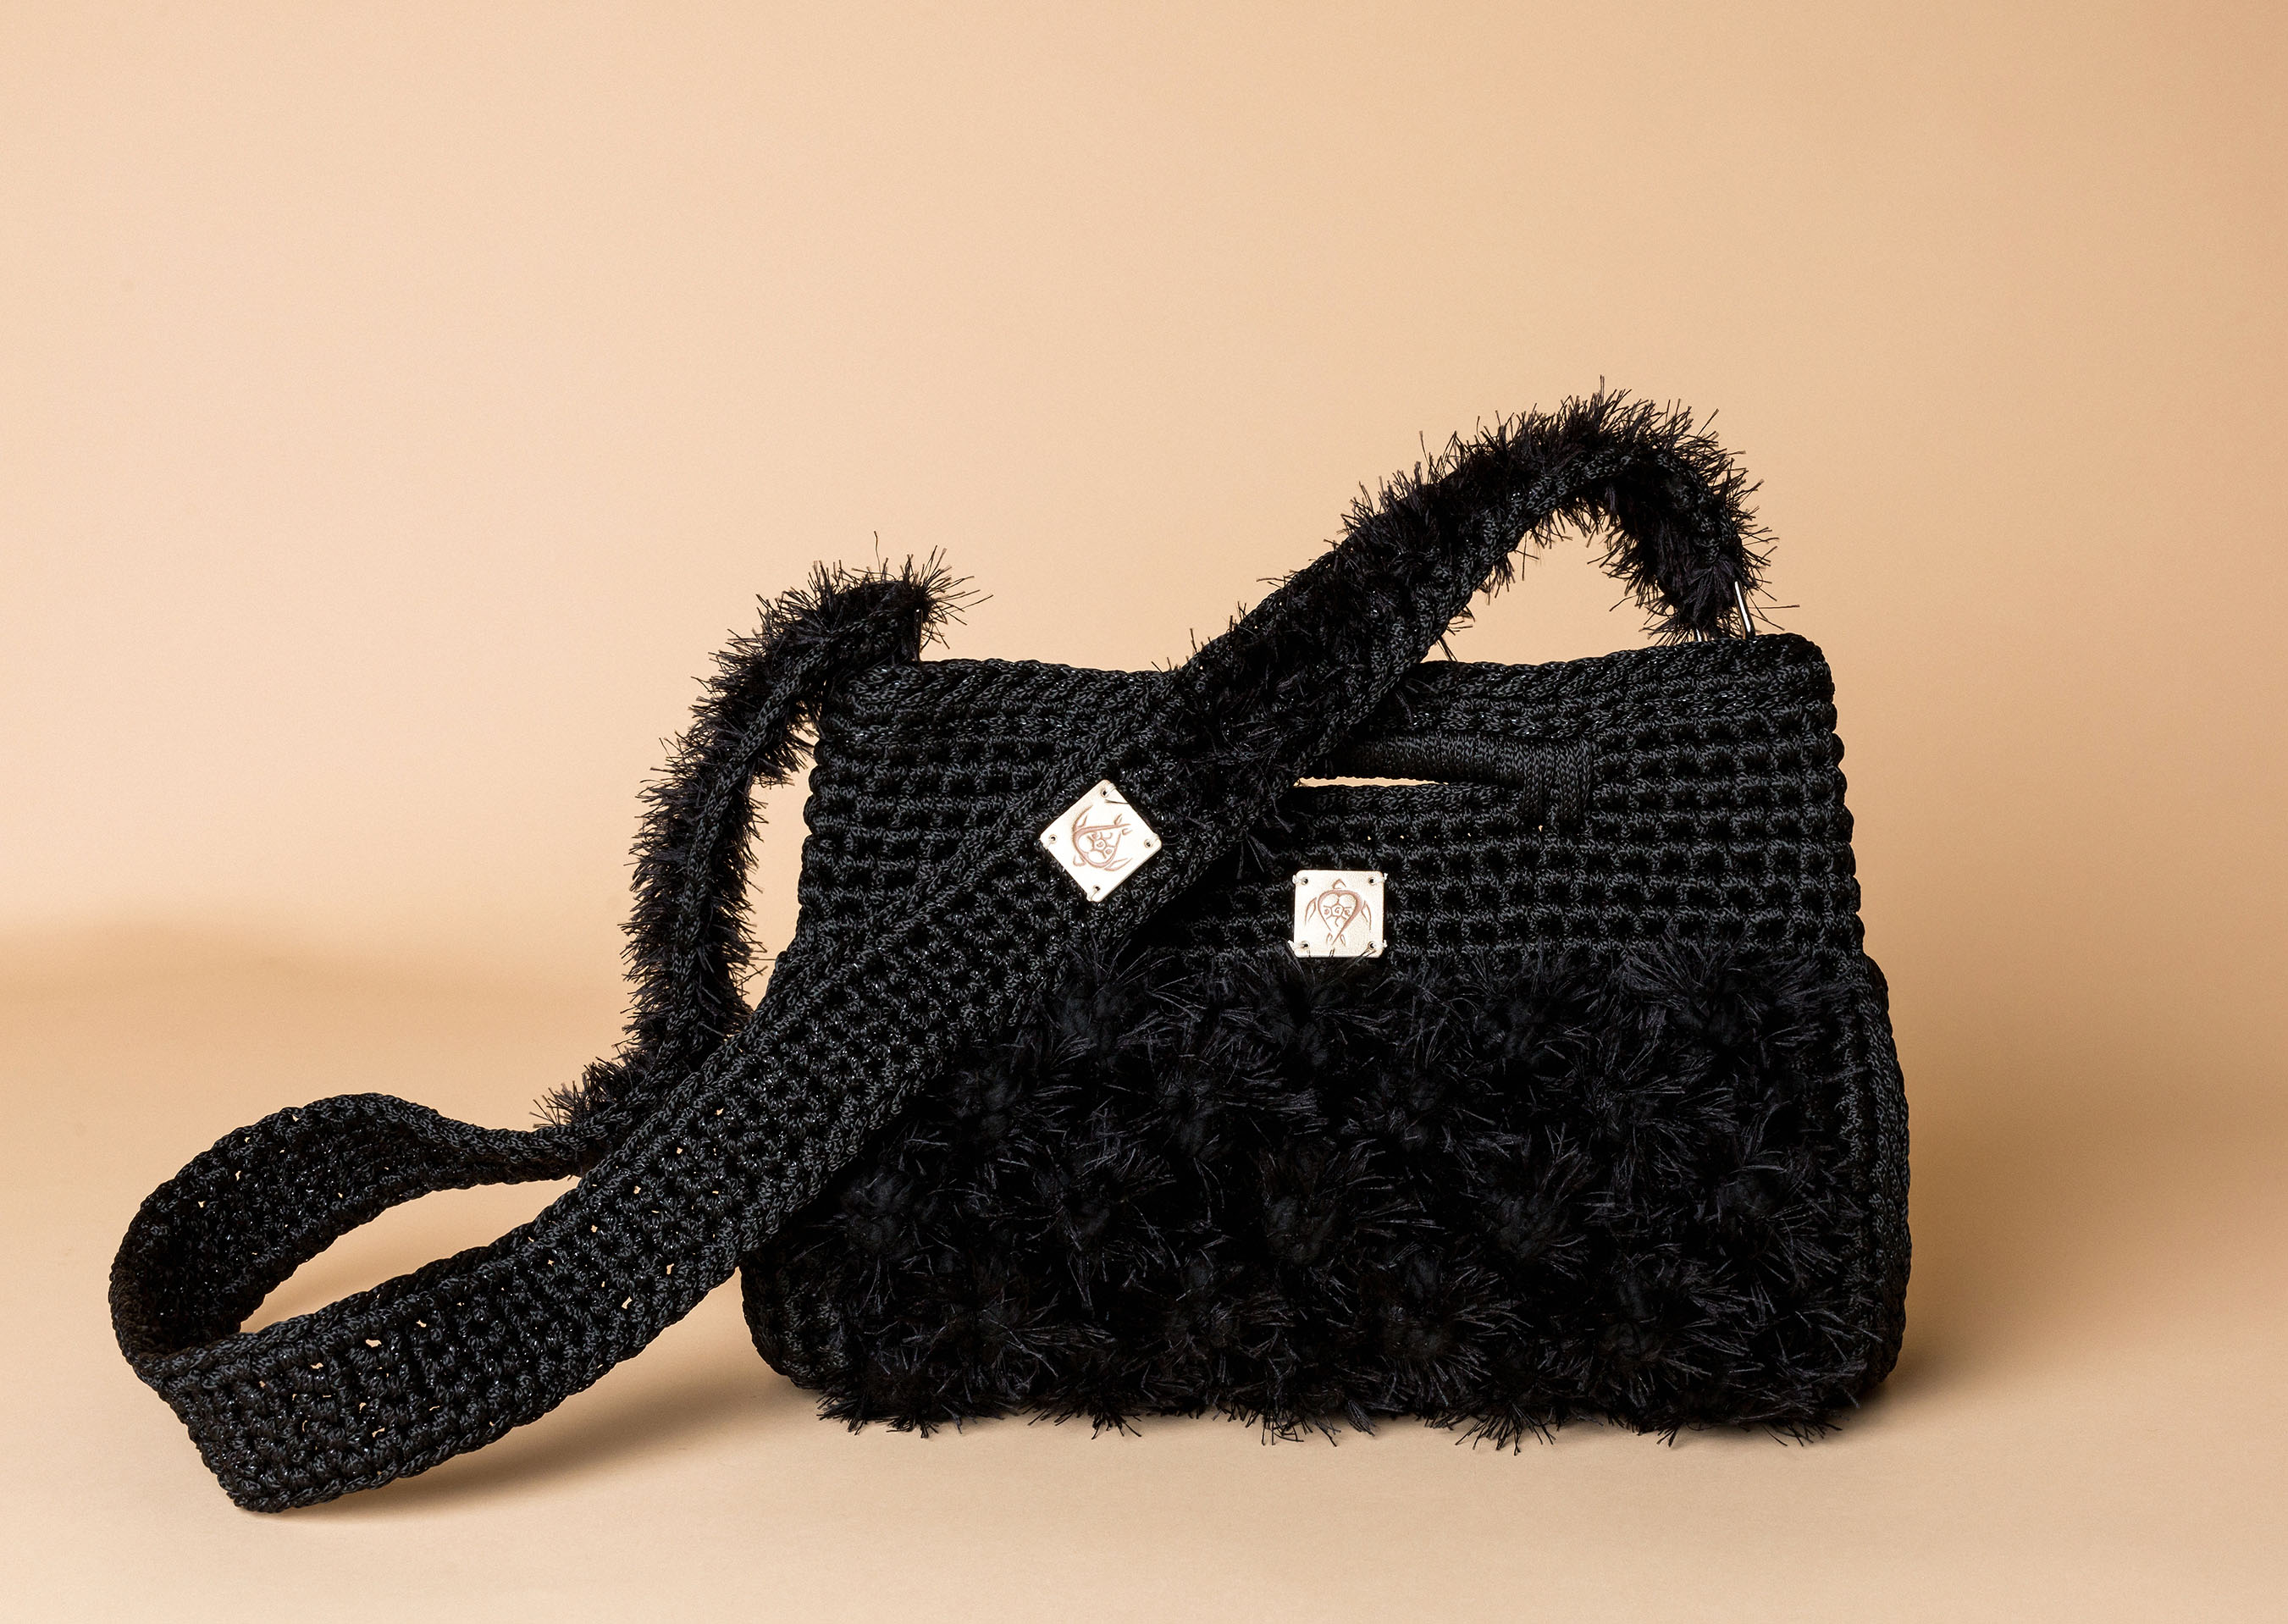 knitted handbag in black